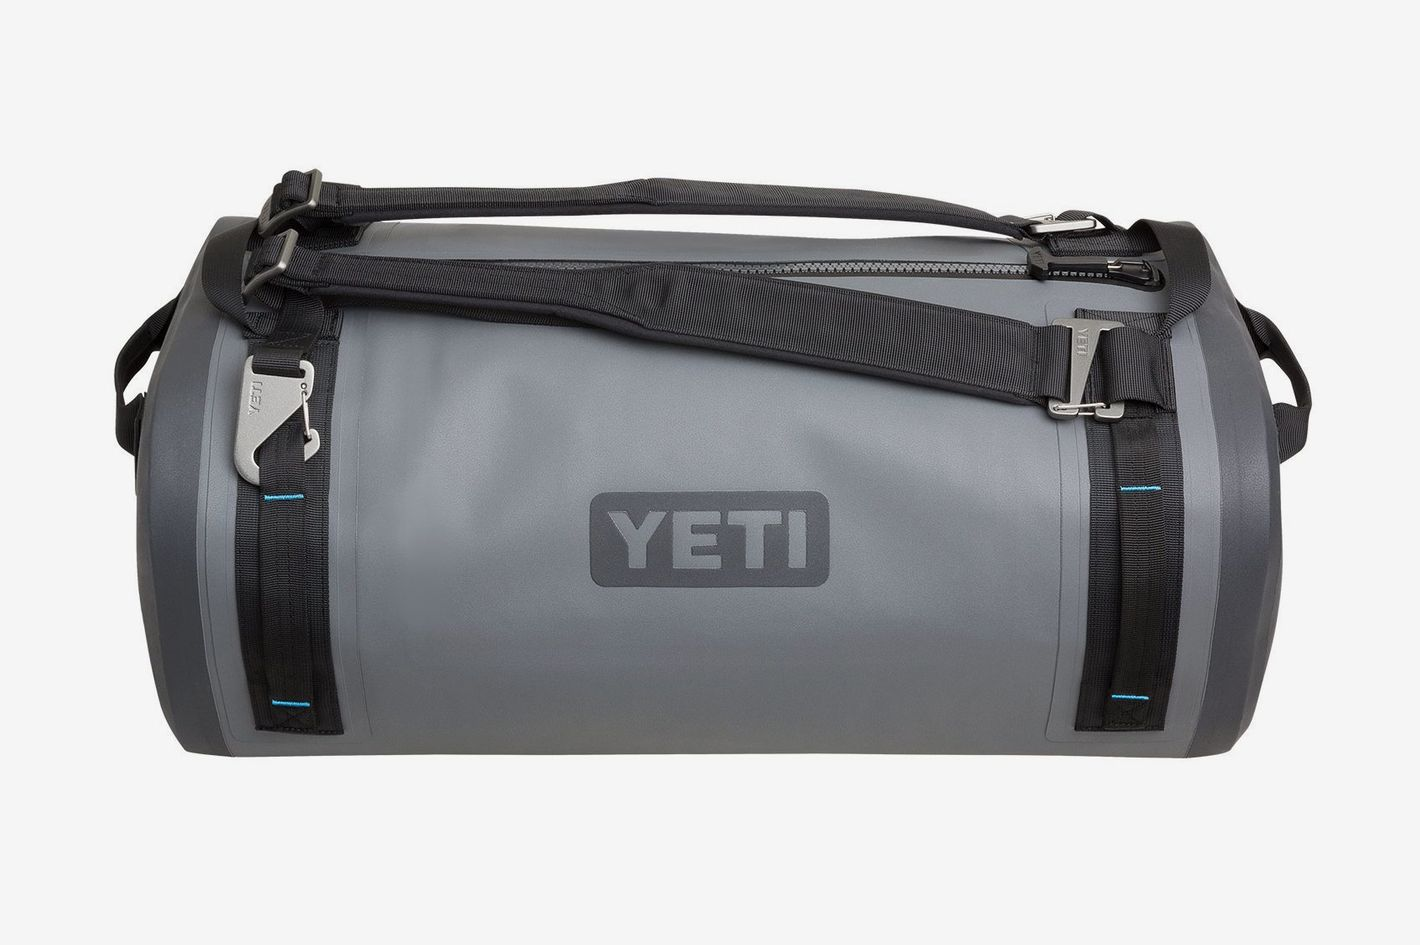 e930d0dd03 Yeti Panga Airtight Waterproof Submersible Duffel Bag